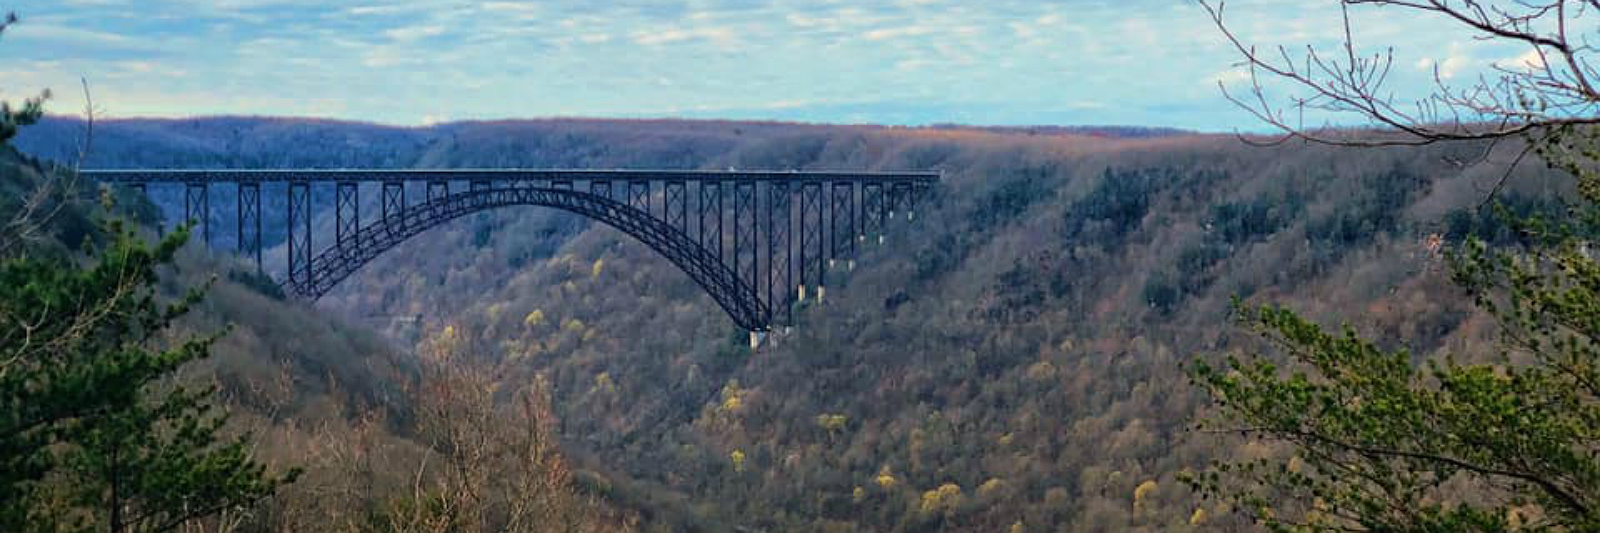 WVAPA Annual Conference view: Adventures on the Gorge